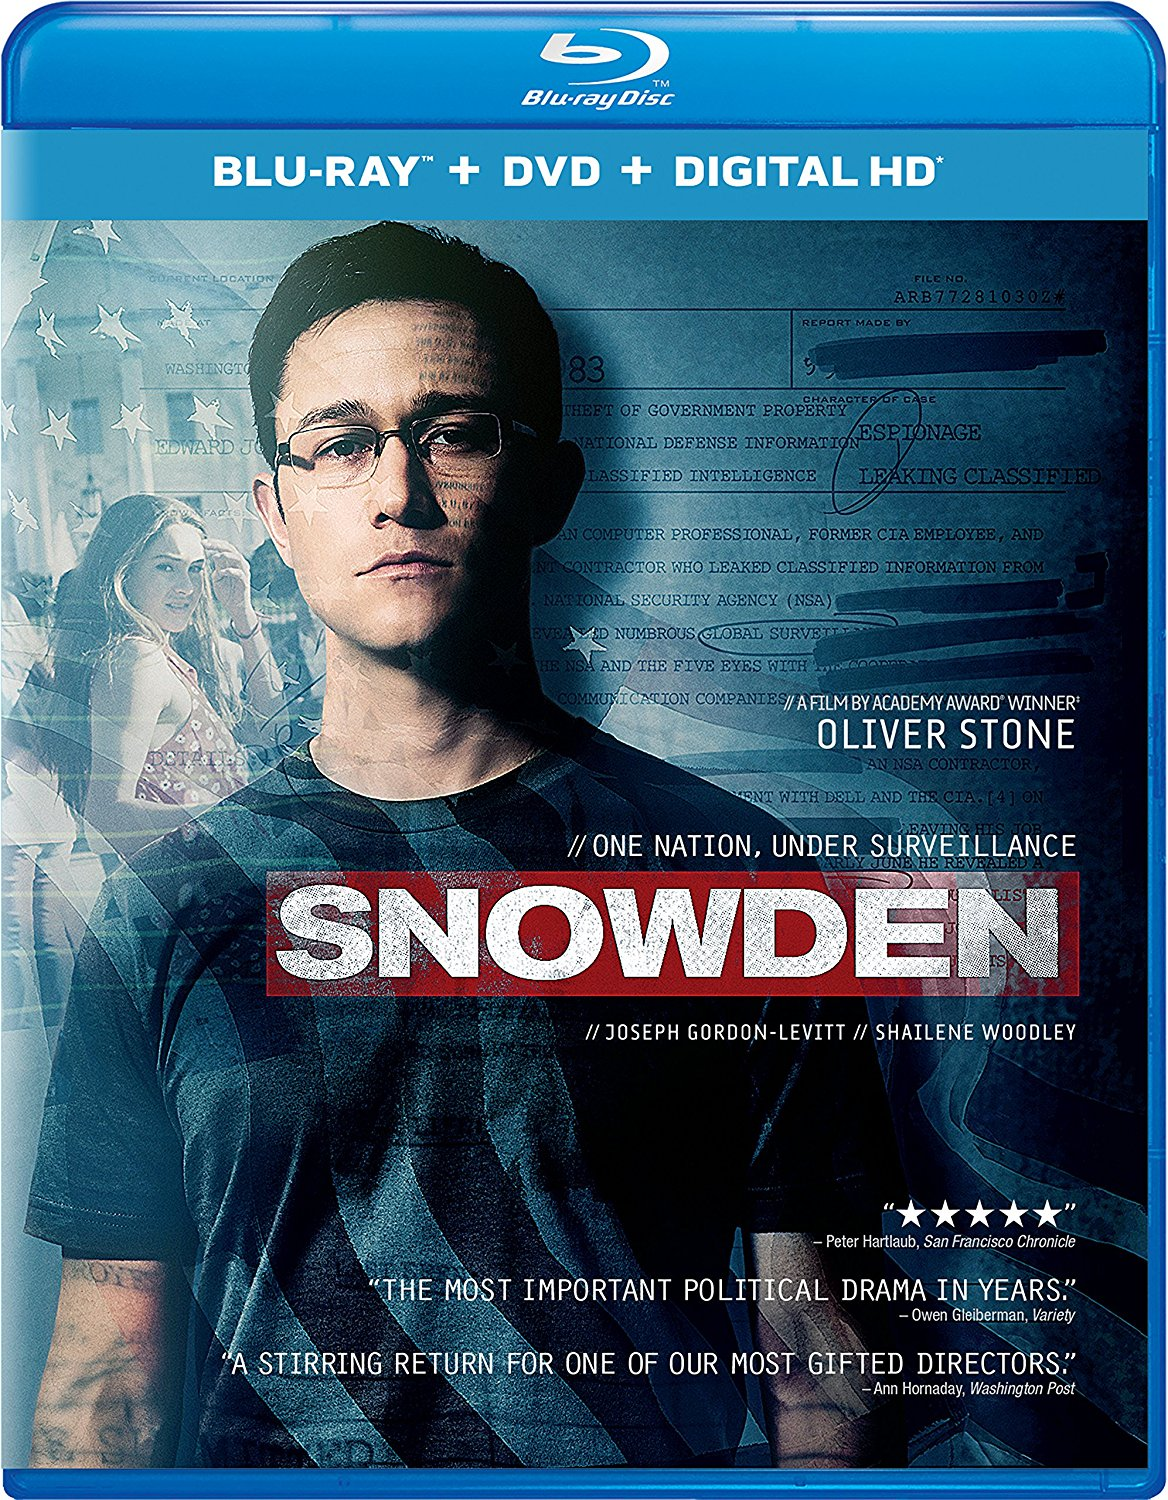 Snowden is out on DVD and Blu-ray today